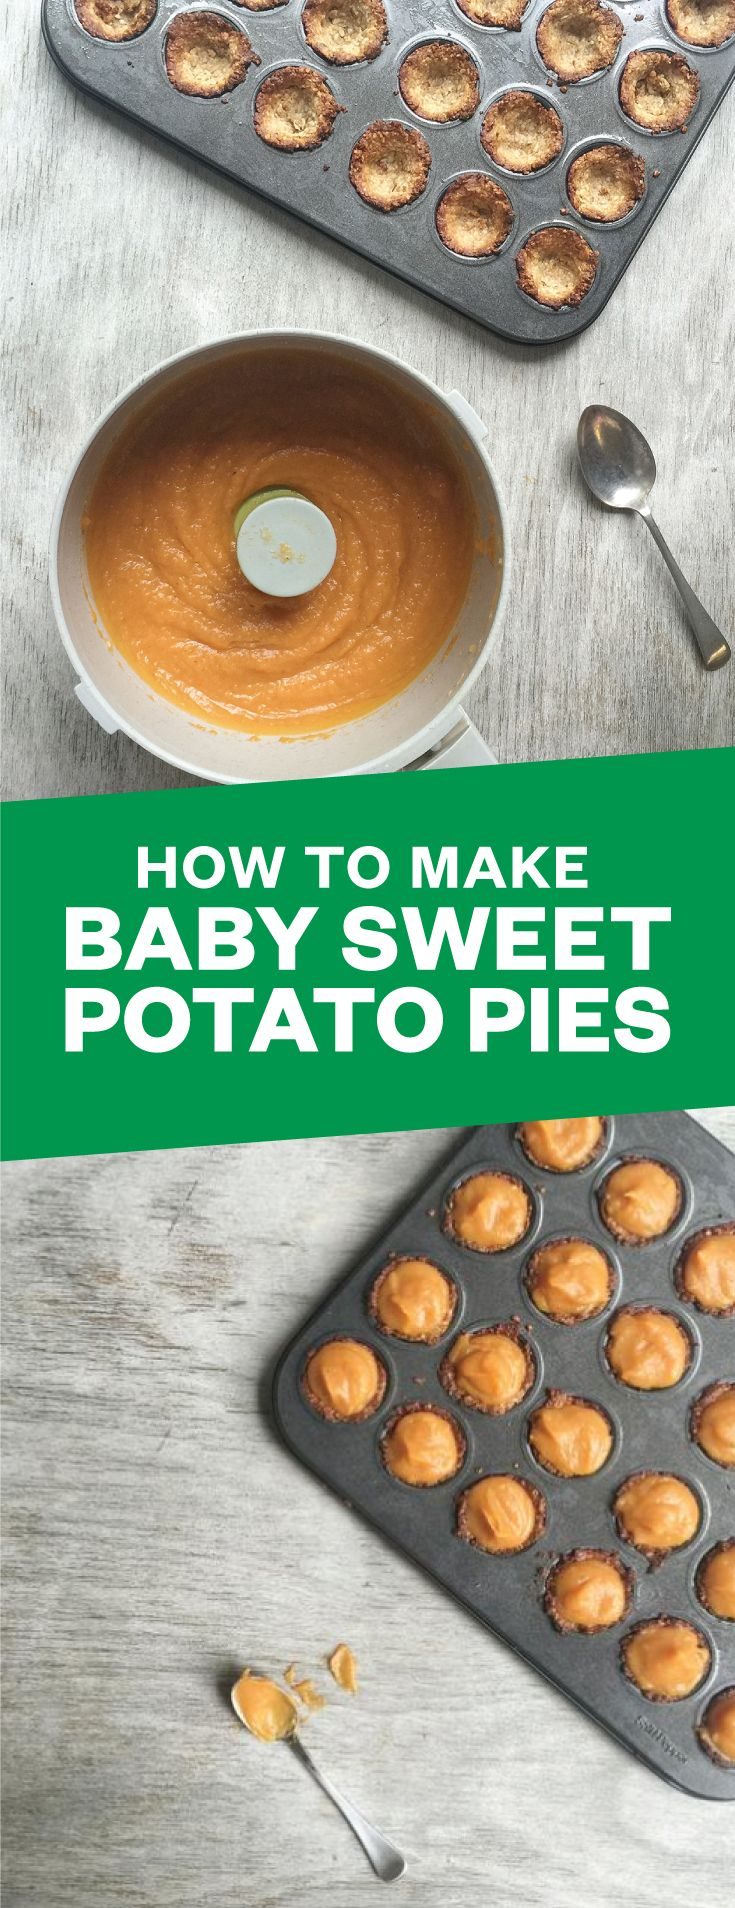 Ever wonder how to make baby pies out of sweet potatoes? This healthy recipe is sweet enough for a dessert treat, or as an appetizer or snack when having friends over. You just need a few simple ingredients including sweet potatoes, coconut milk and nutmeg among a few others. Let us know what you think by leaving a comment below!